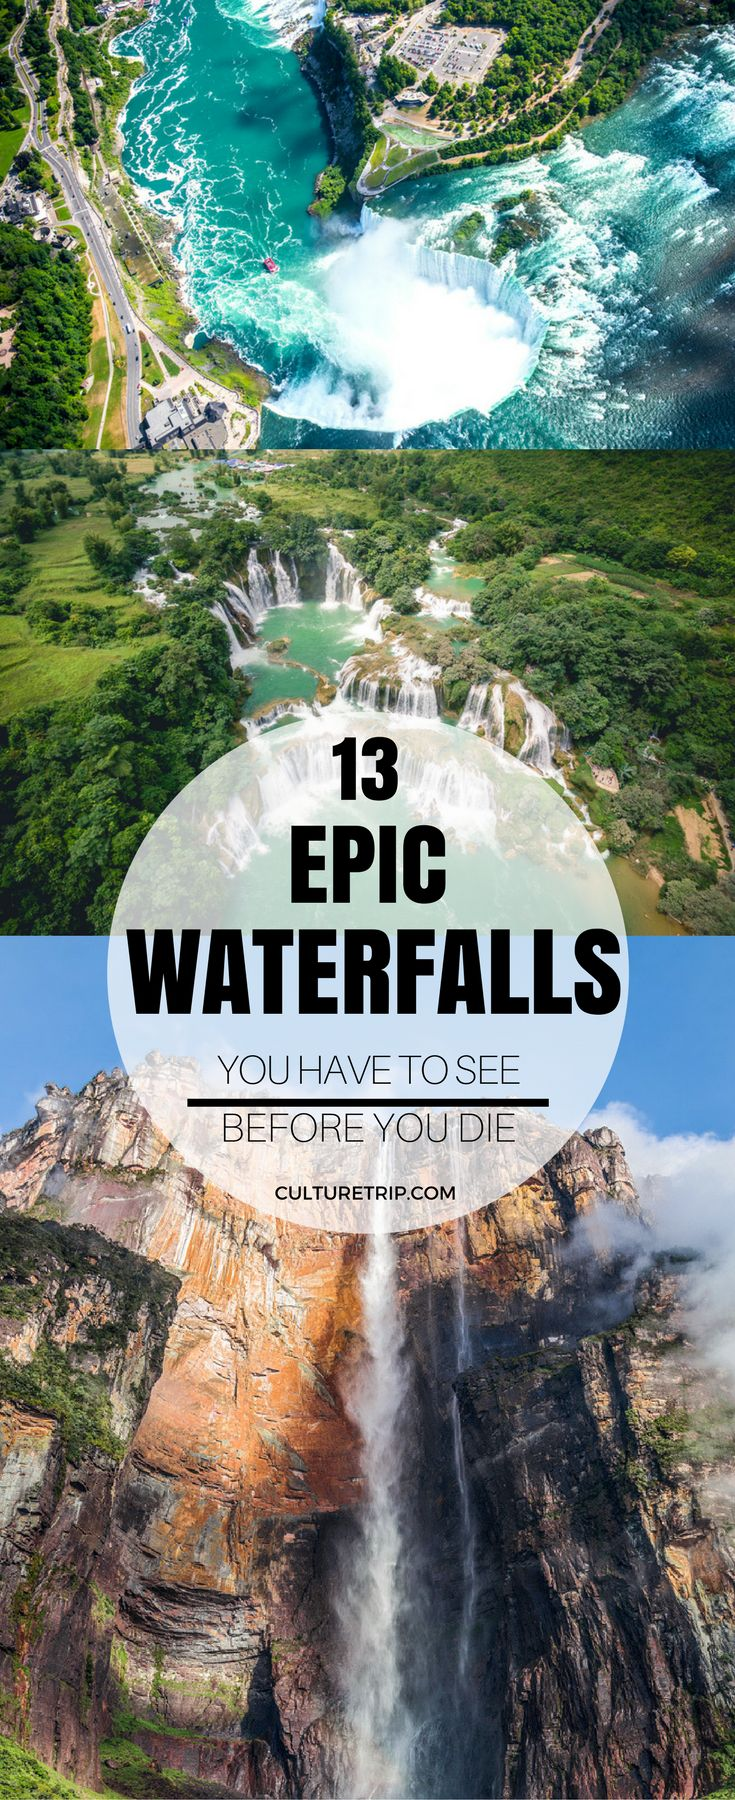 13 Epic Waterfalls You Have to See Before You Die|Pinterest: @theculturetrip